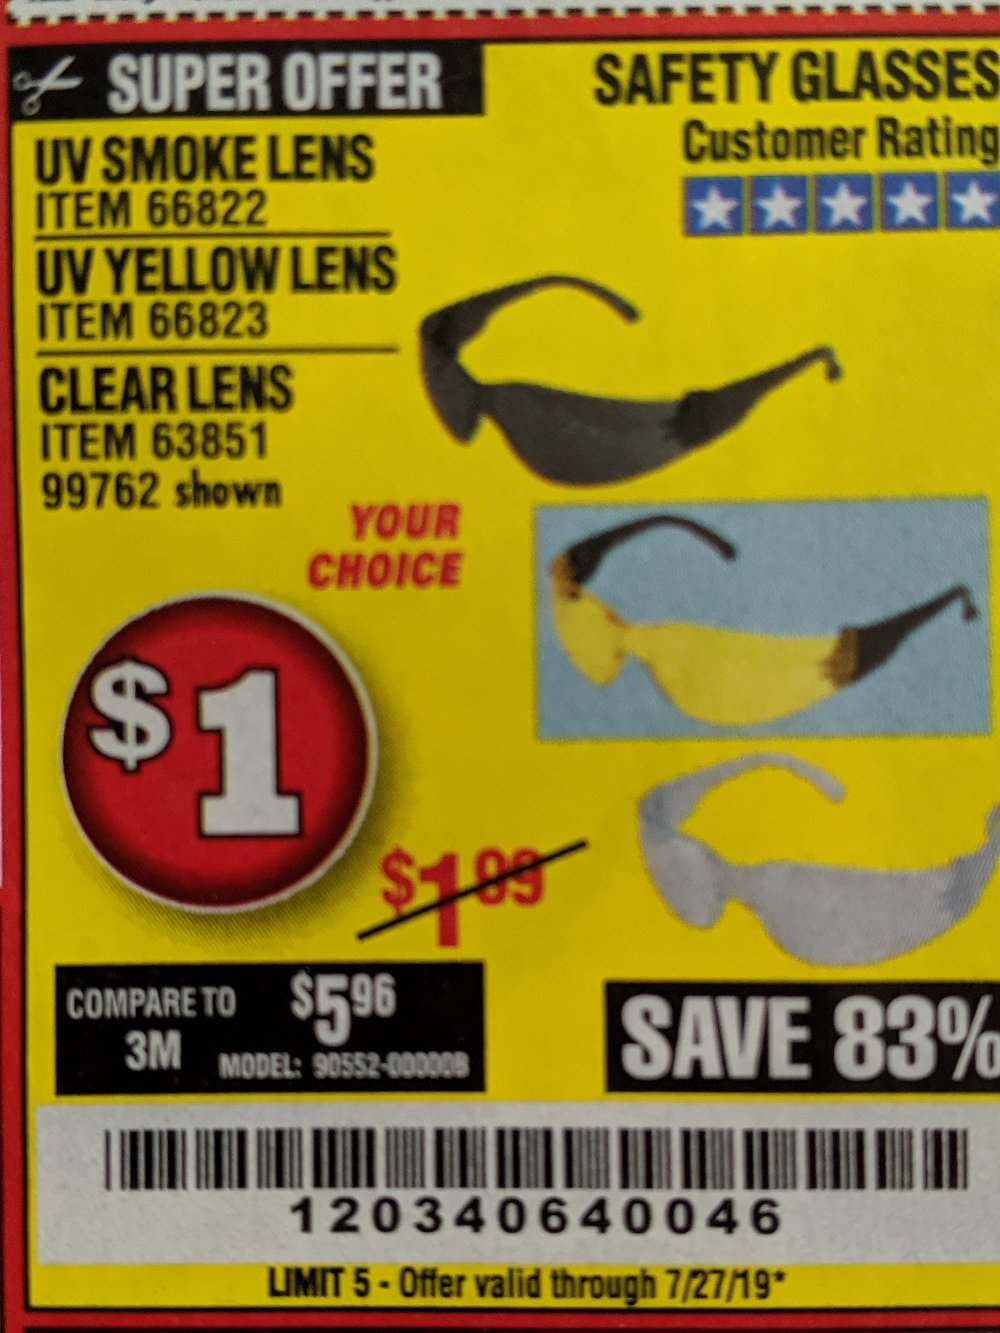 Harbor Freight Coupon, HF Coupons - Clear Lens Safety Glasses